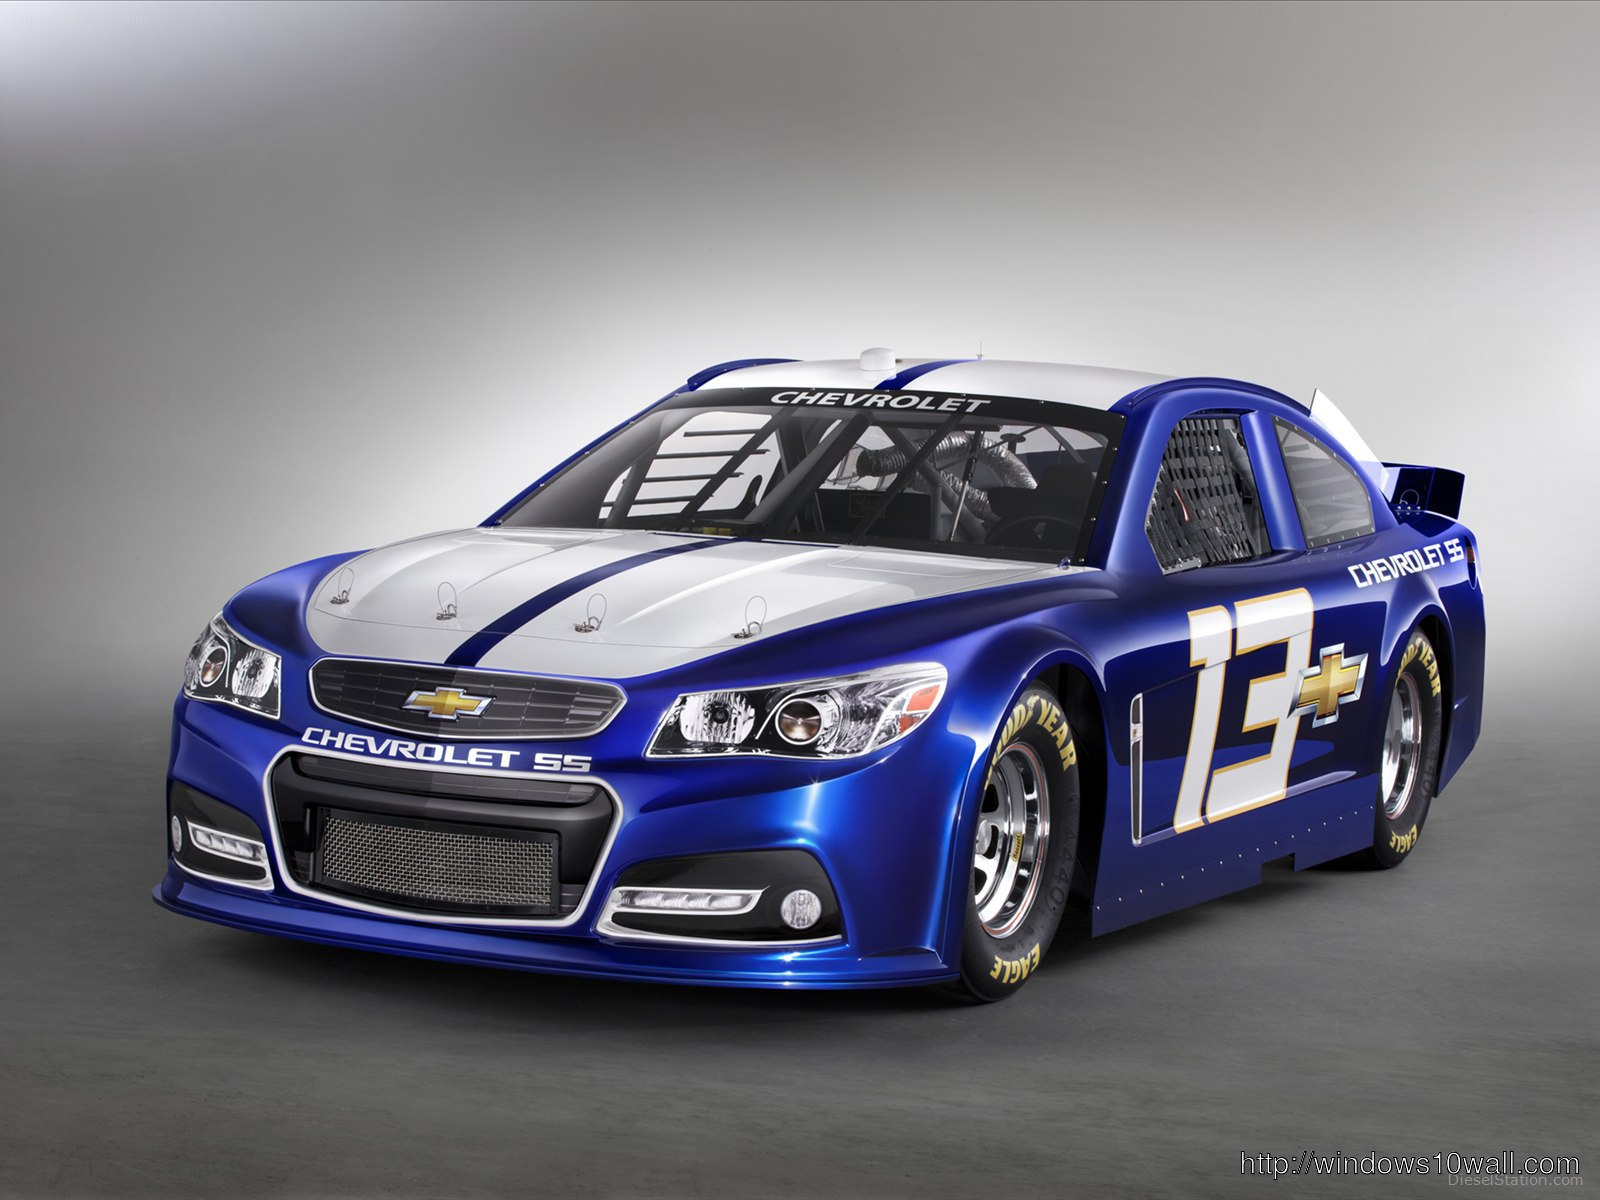 2013 Chevrolet SS NASCAR Race Car Background Wallpaper